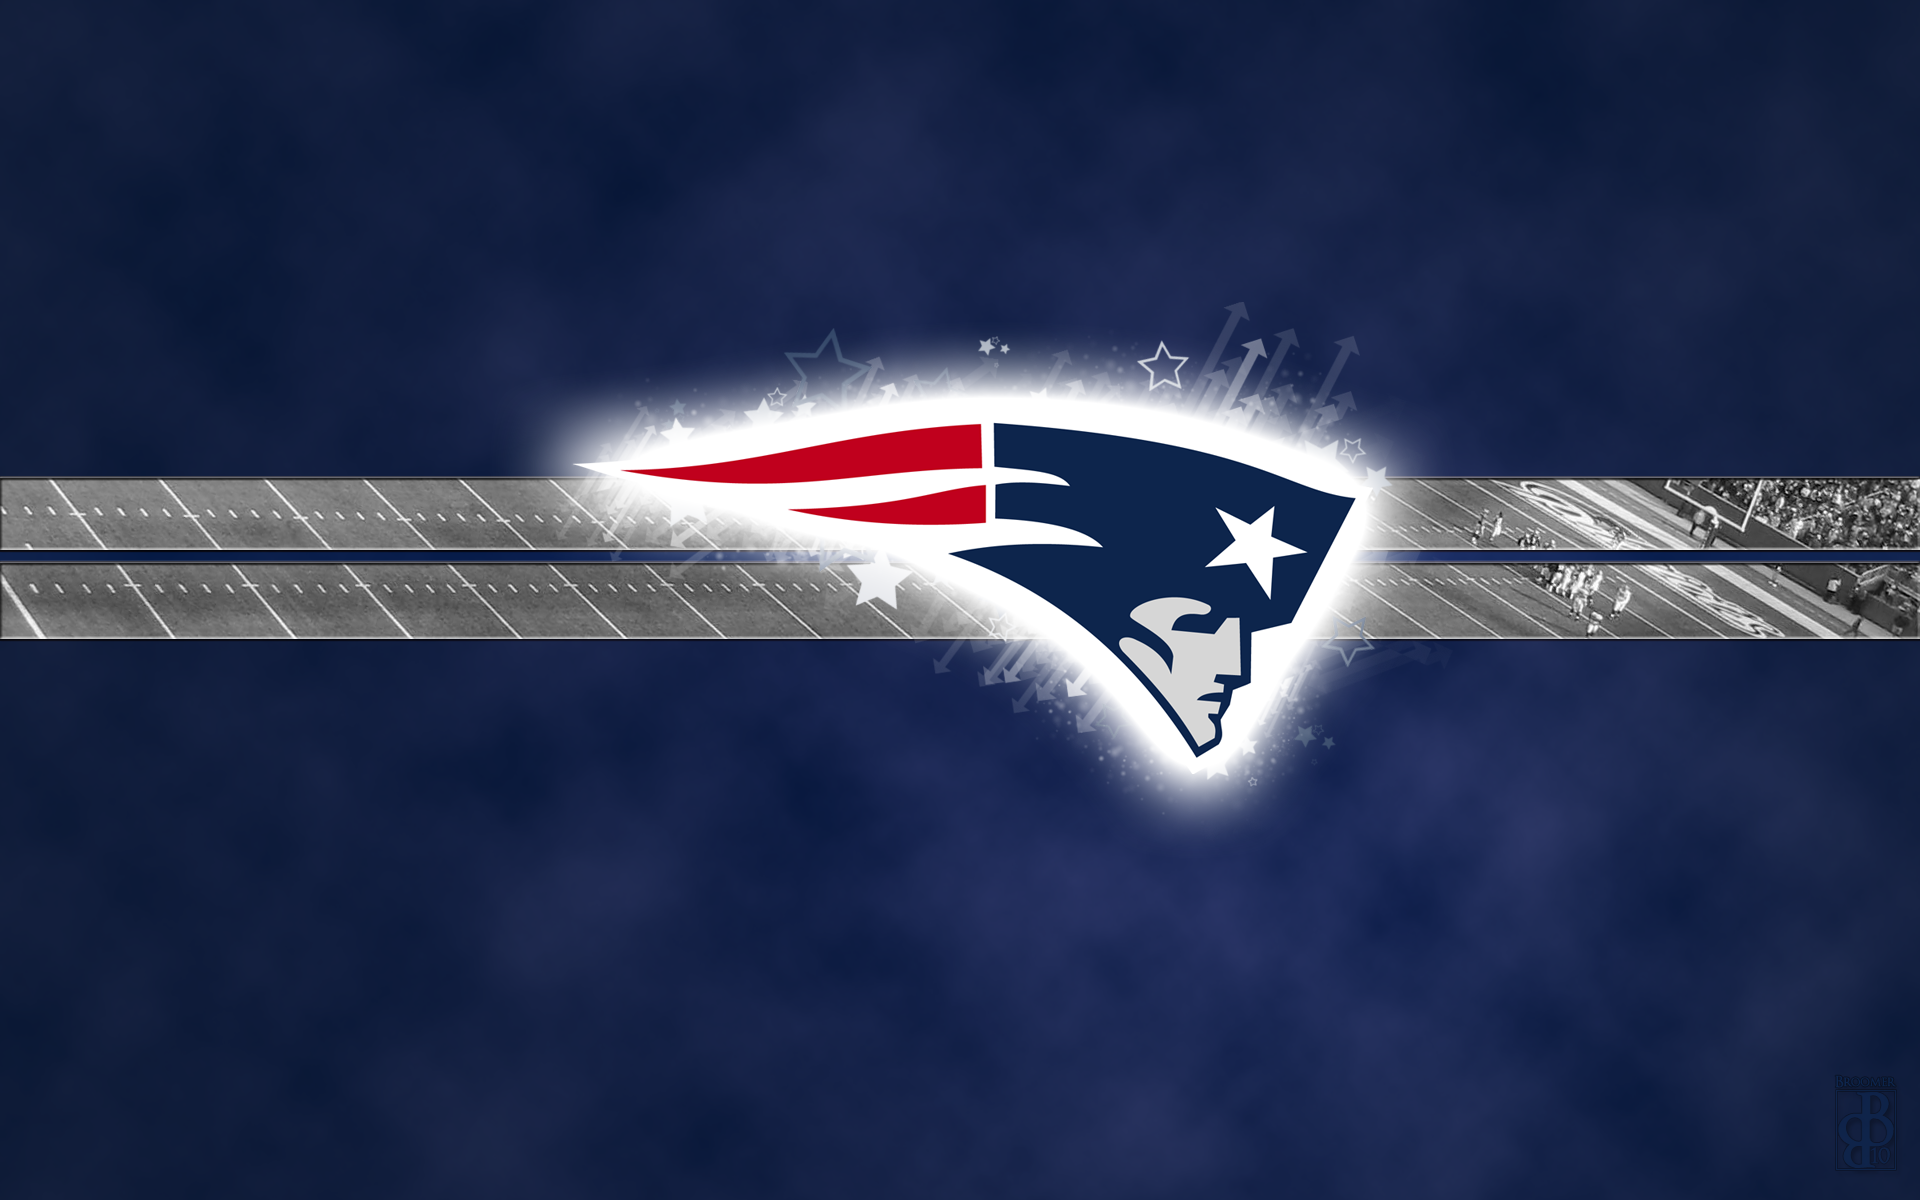 Patriots Football New England Patriots desktop wallpaper - Pro football team NFL